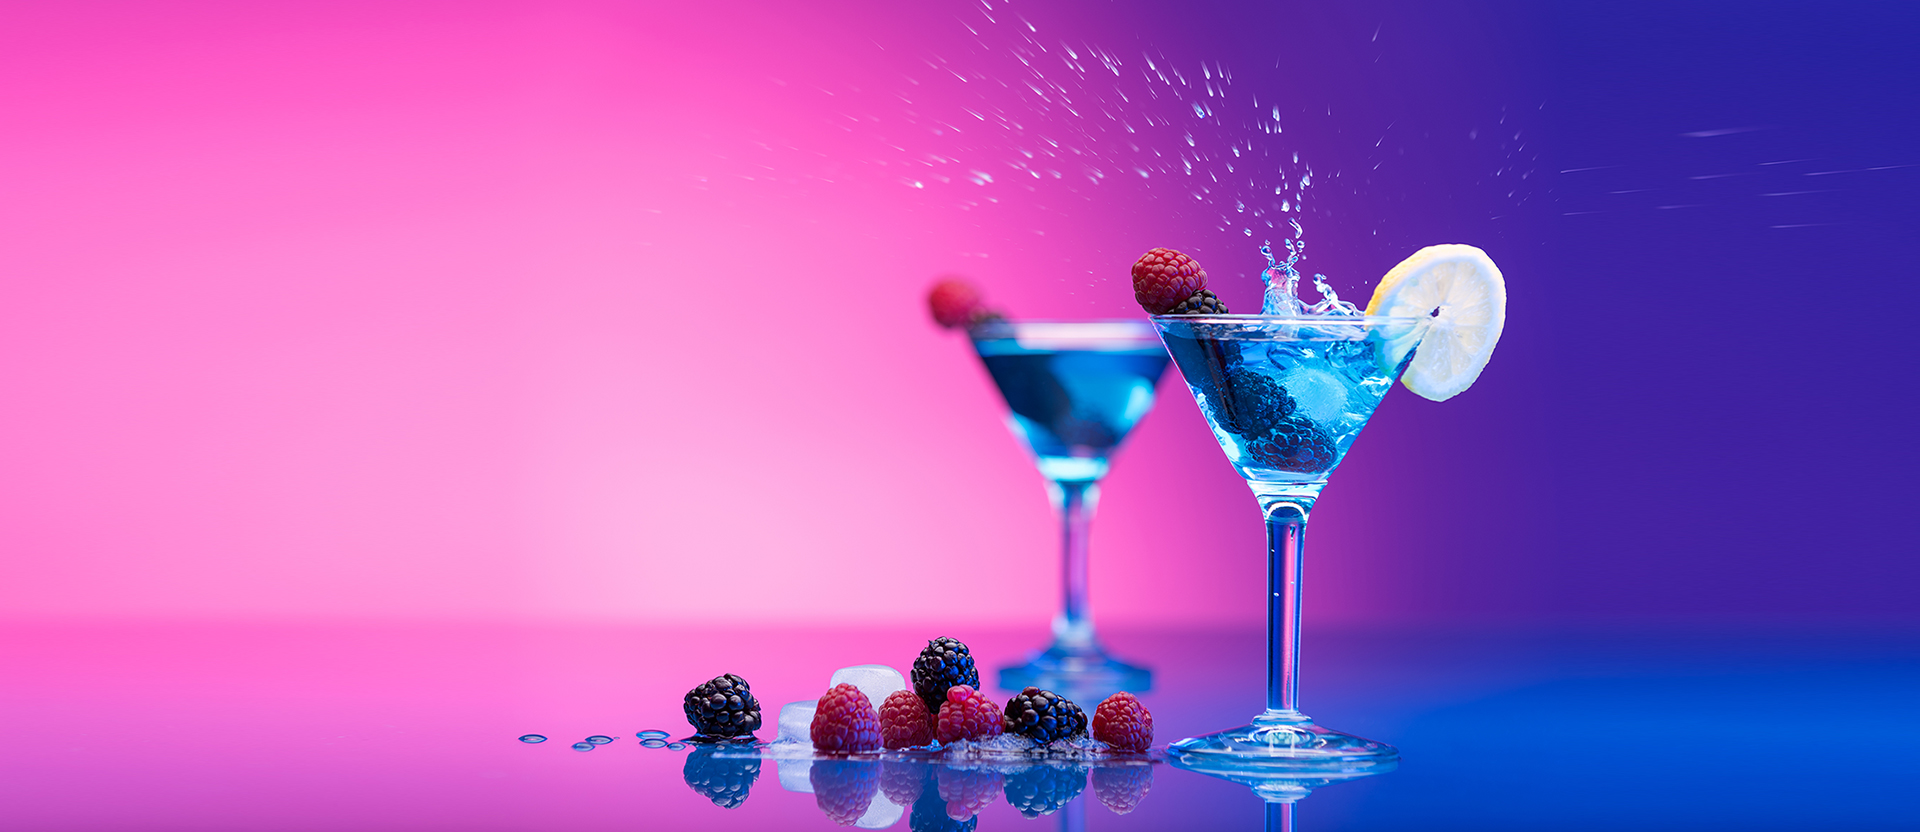 pink drink wallpapers: Cocktail Background, Cocktail, Wine, Purple Background